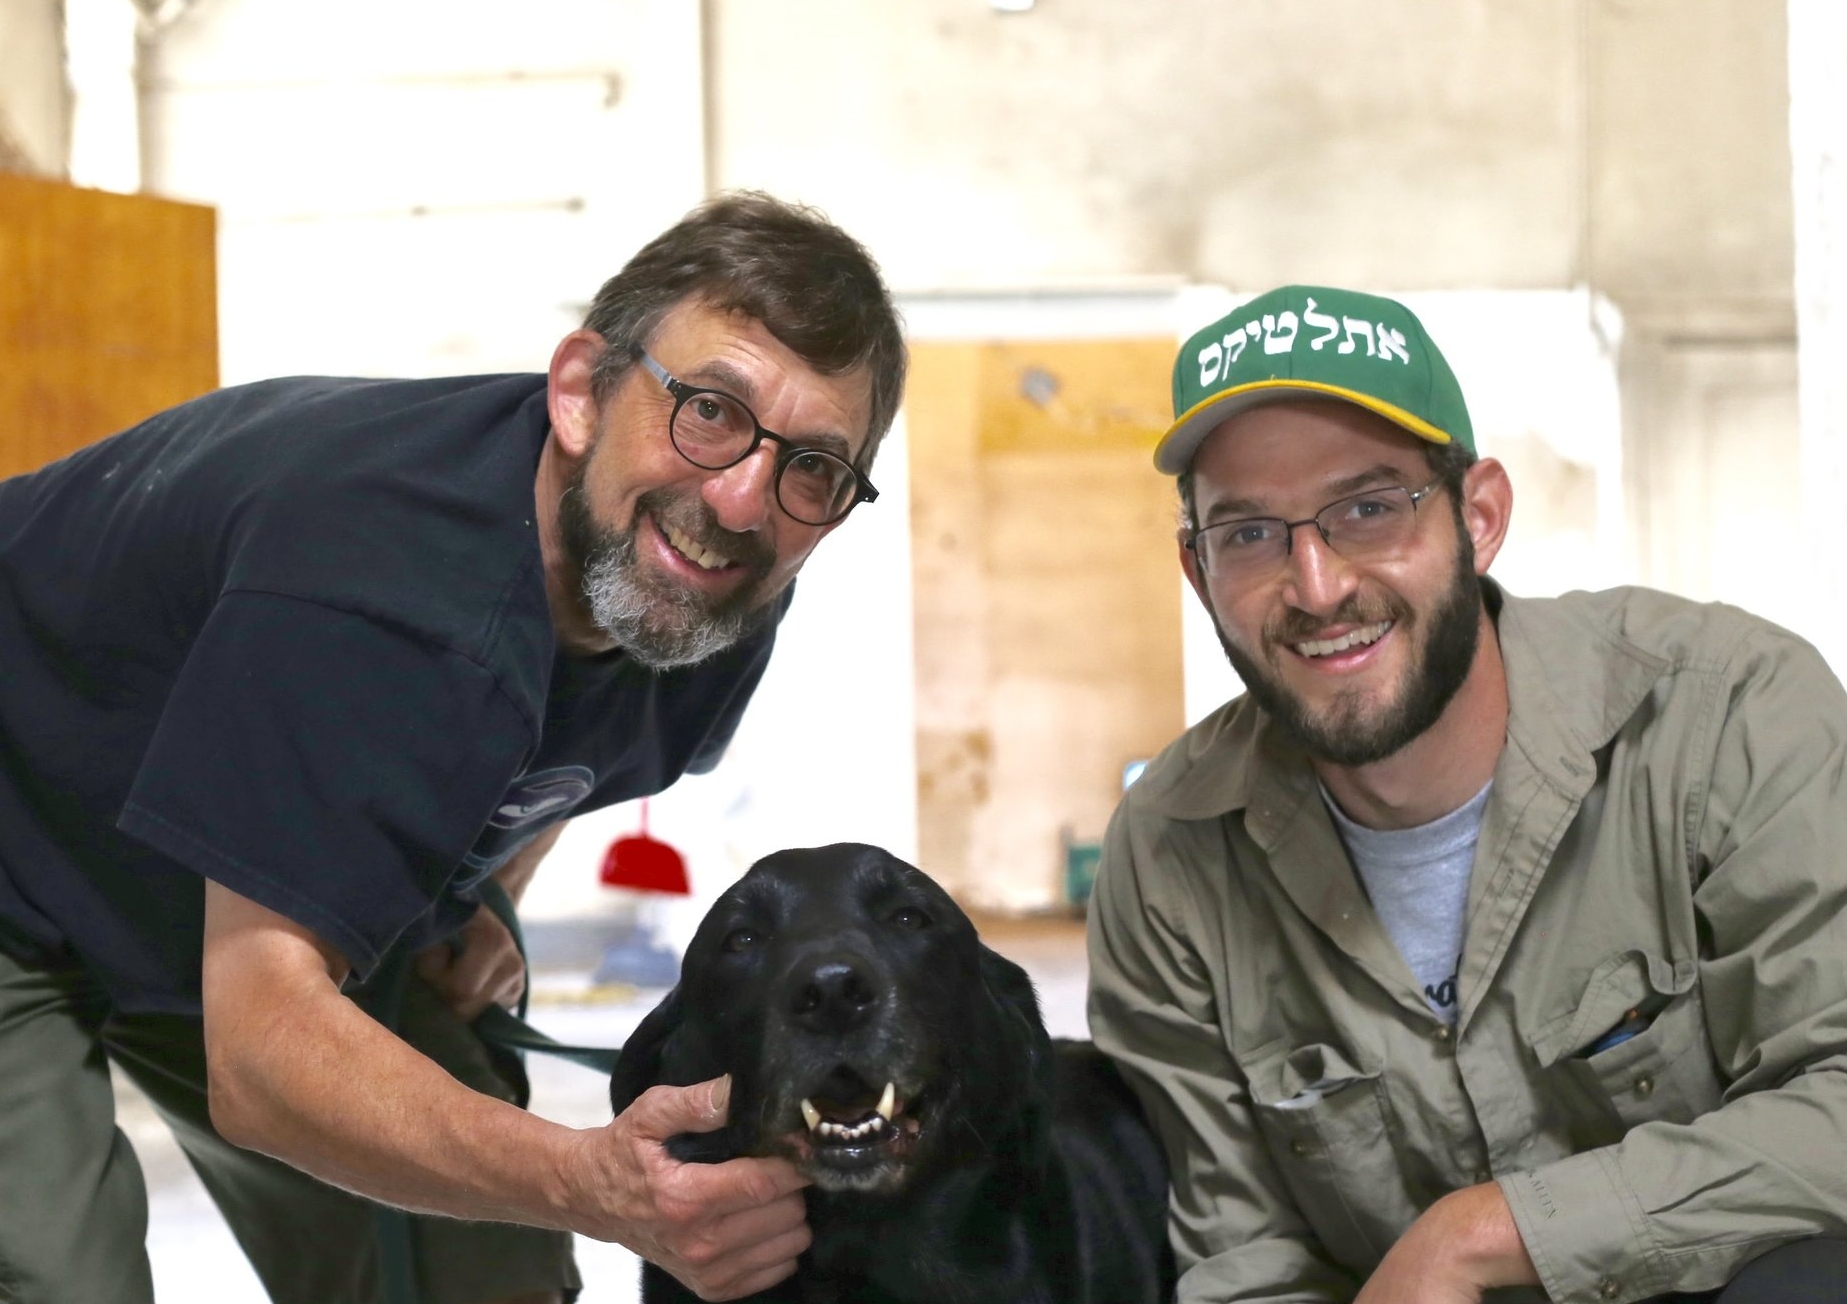 Former Grand Bakery owner, Bob Jaffe (left) with new owner, Sam Tobis (right), along with Mr. Moochie, the pup (center).